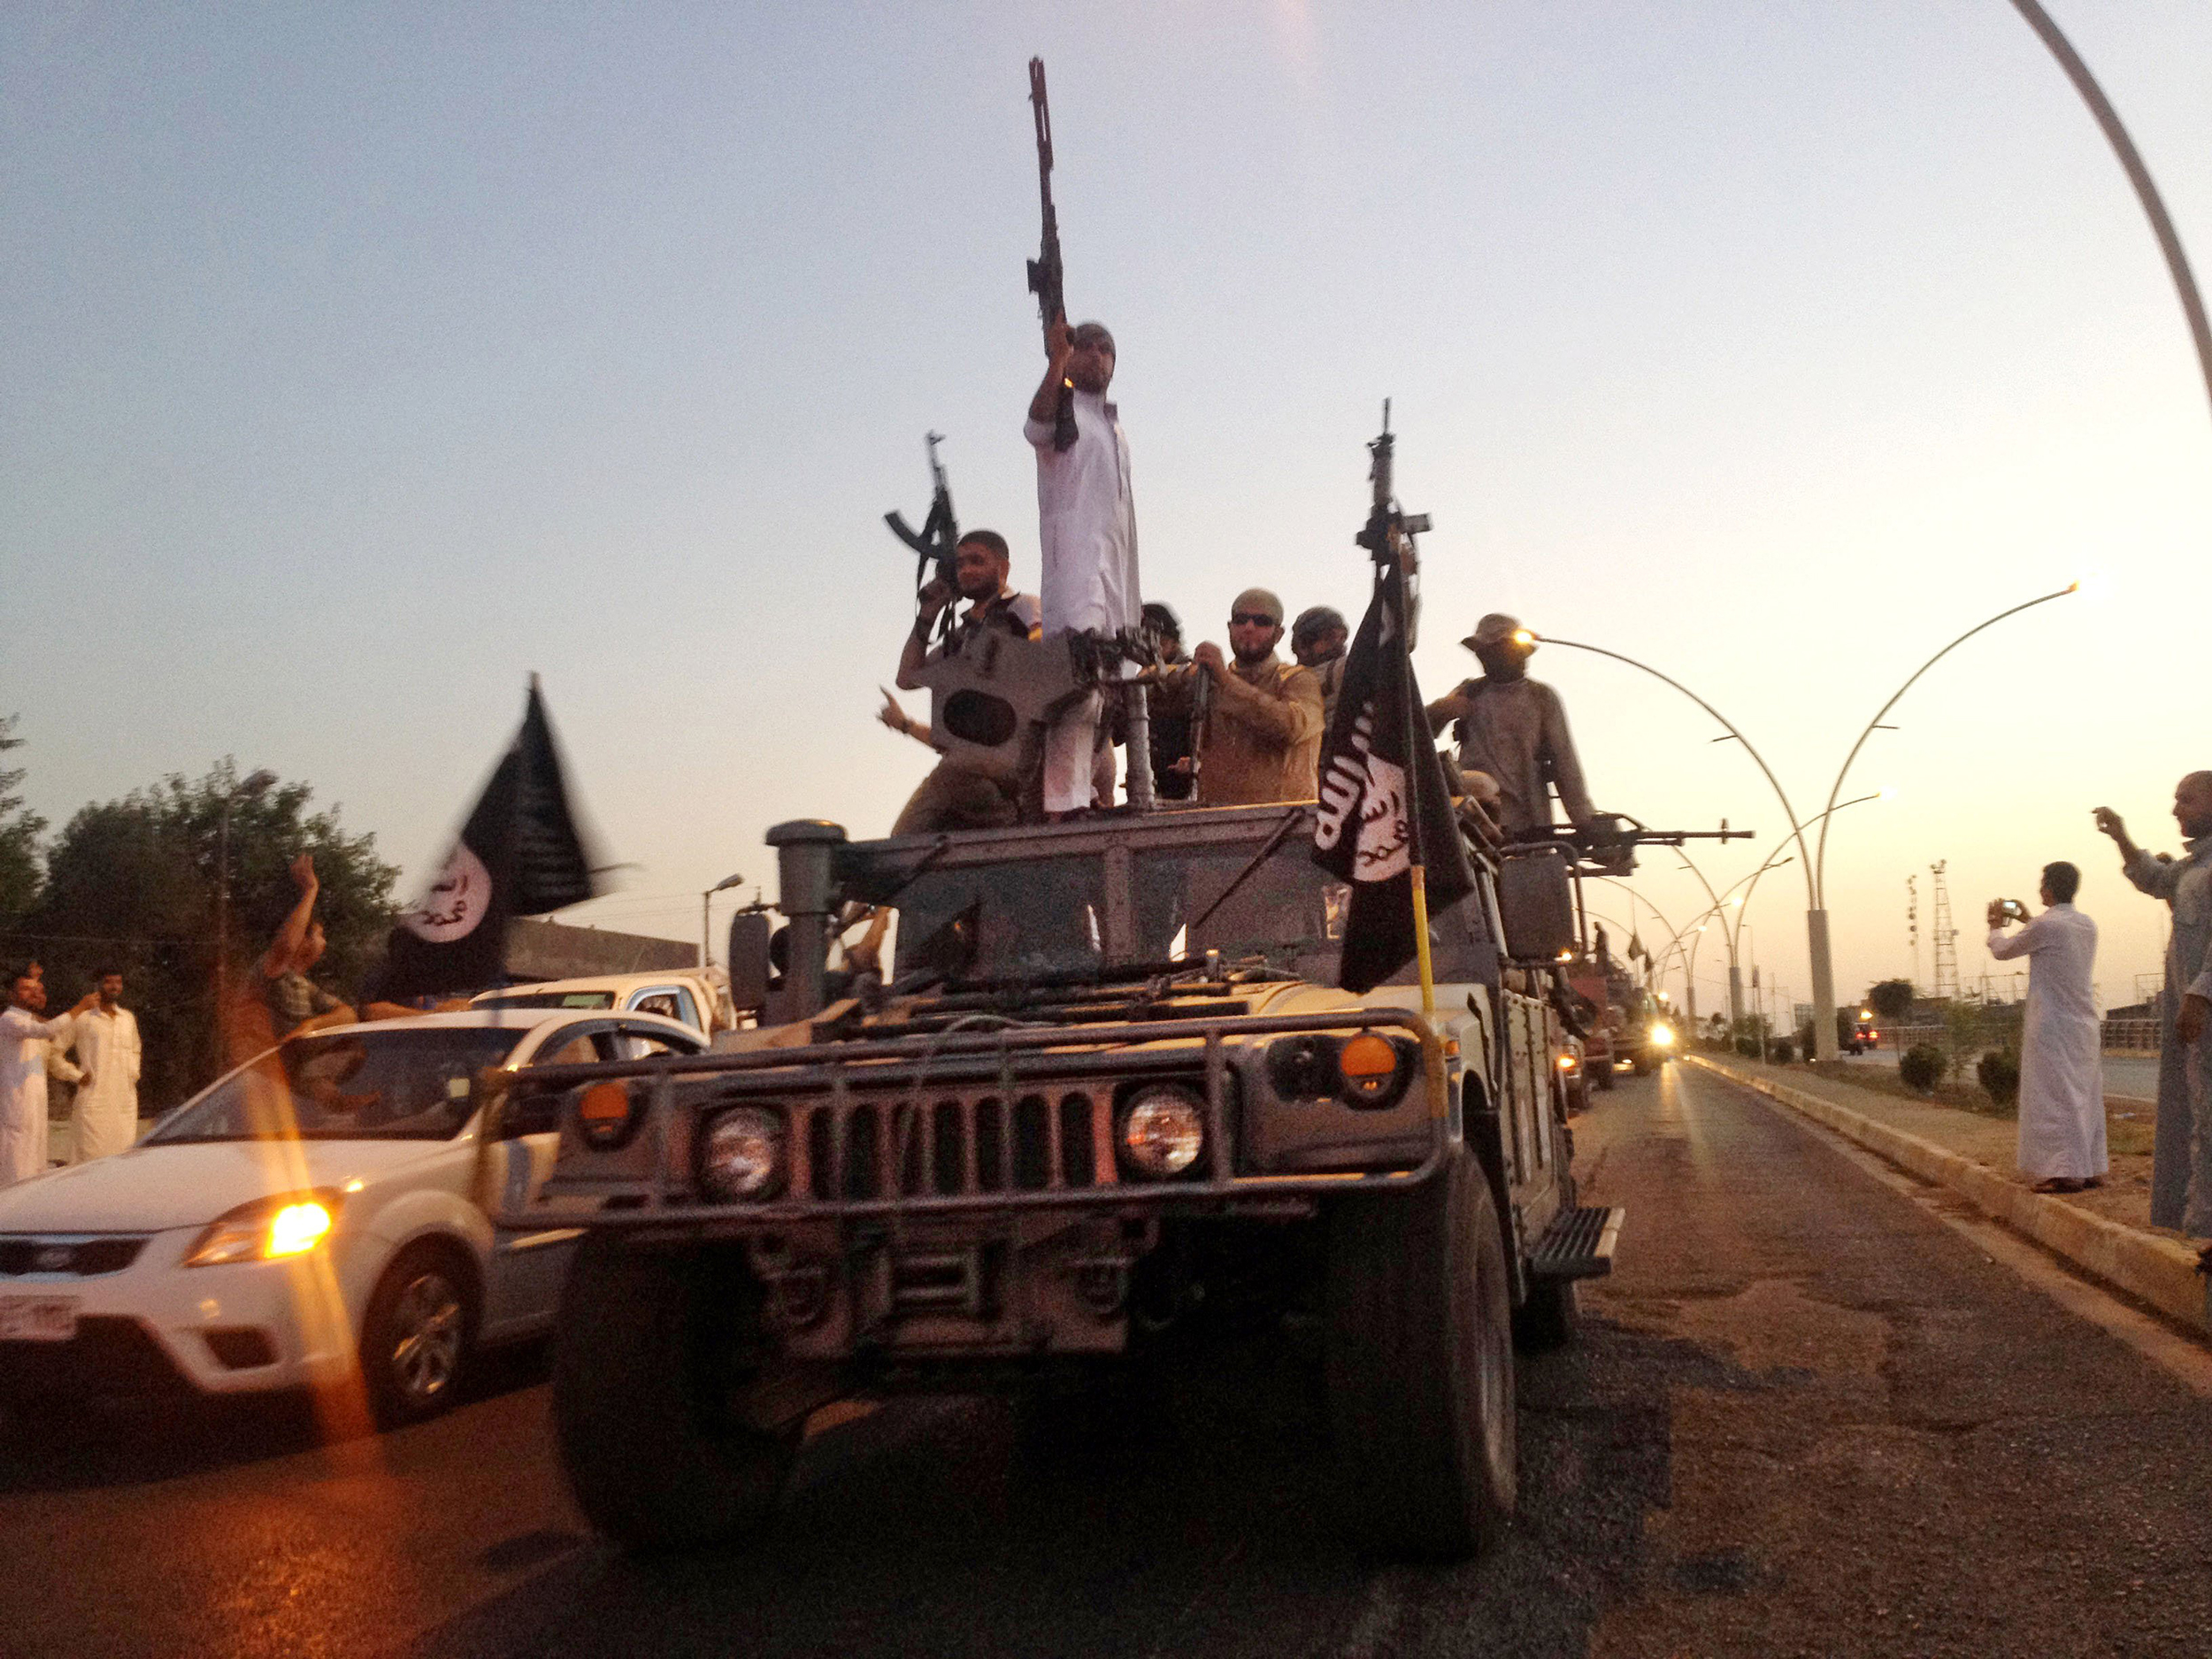 ISIS Militants Hunt Down, Publicly Execute Former Election Candidates